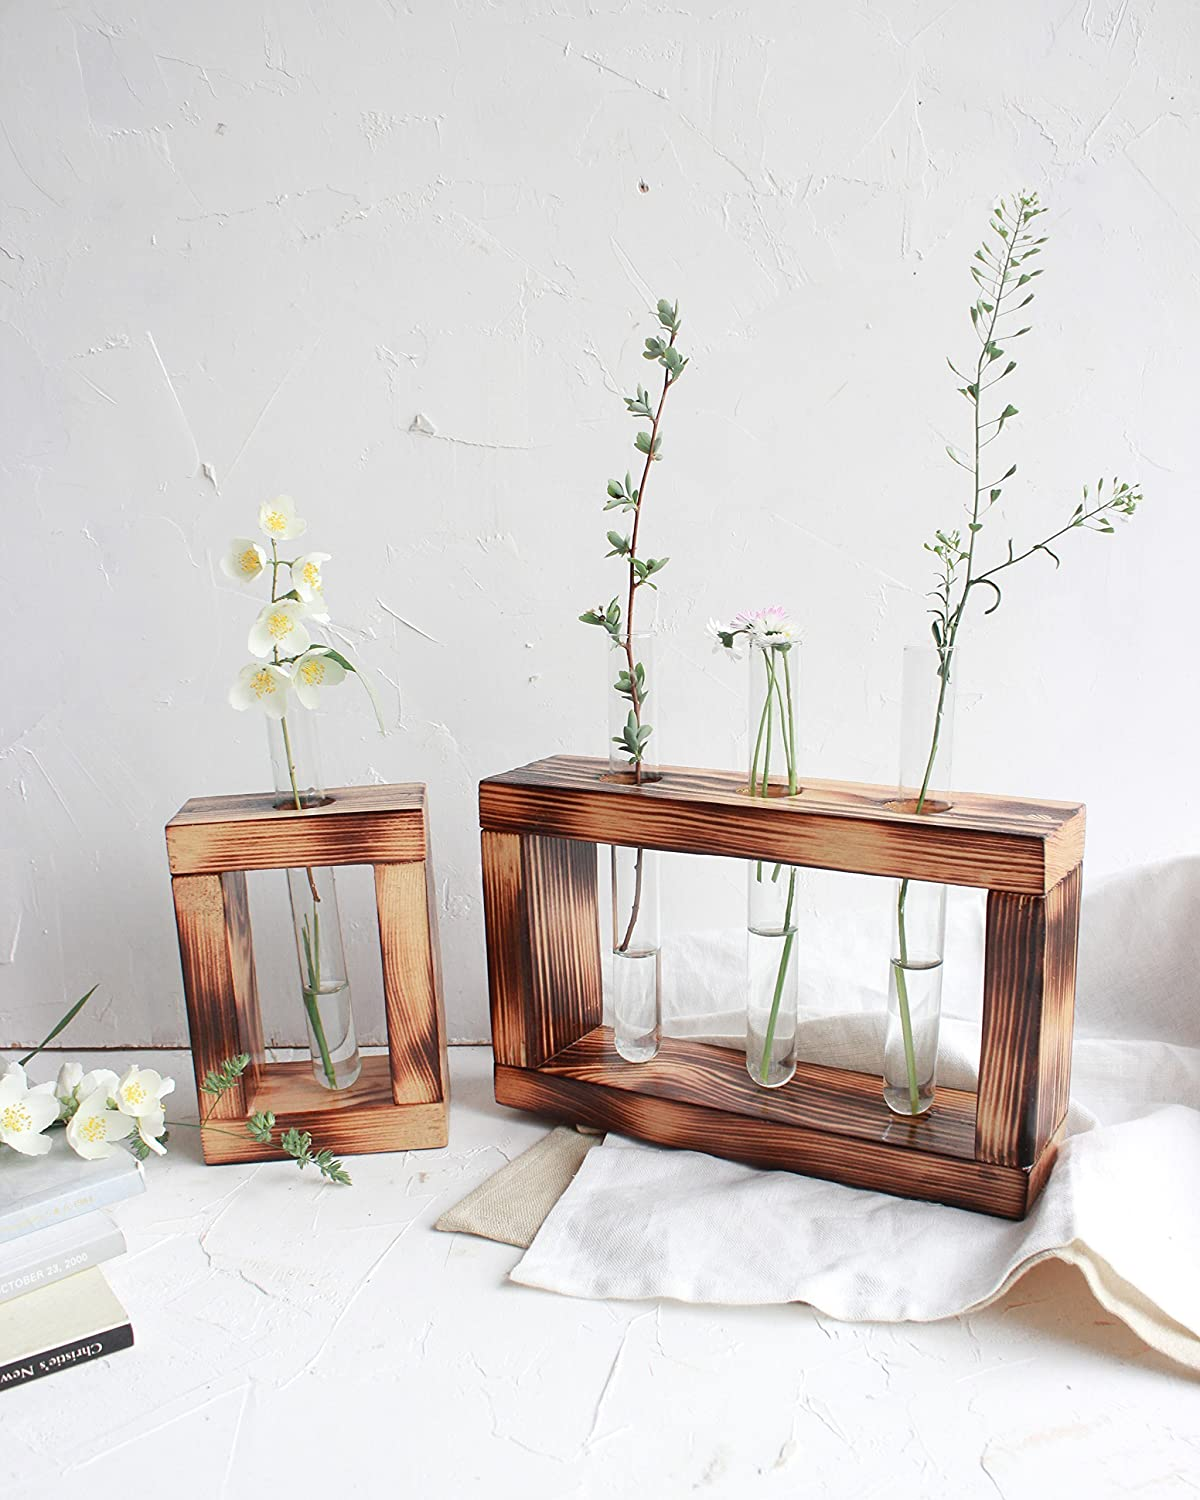 Set of 2 Test Tube Stand Hanging Flower Bud Vase Display Minimalist Tube Rack Centerpiece Decorative Rustic Wood Plant Holder Home Decor Housewarming Grandma Mothers Day Gift